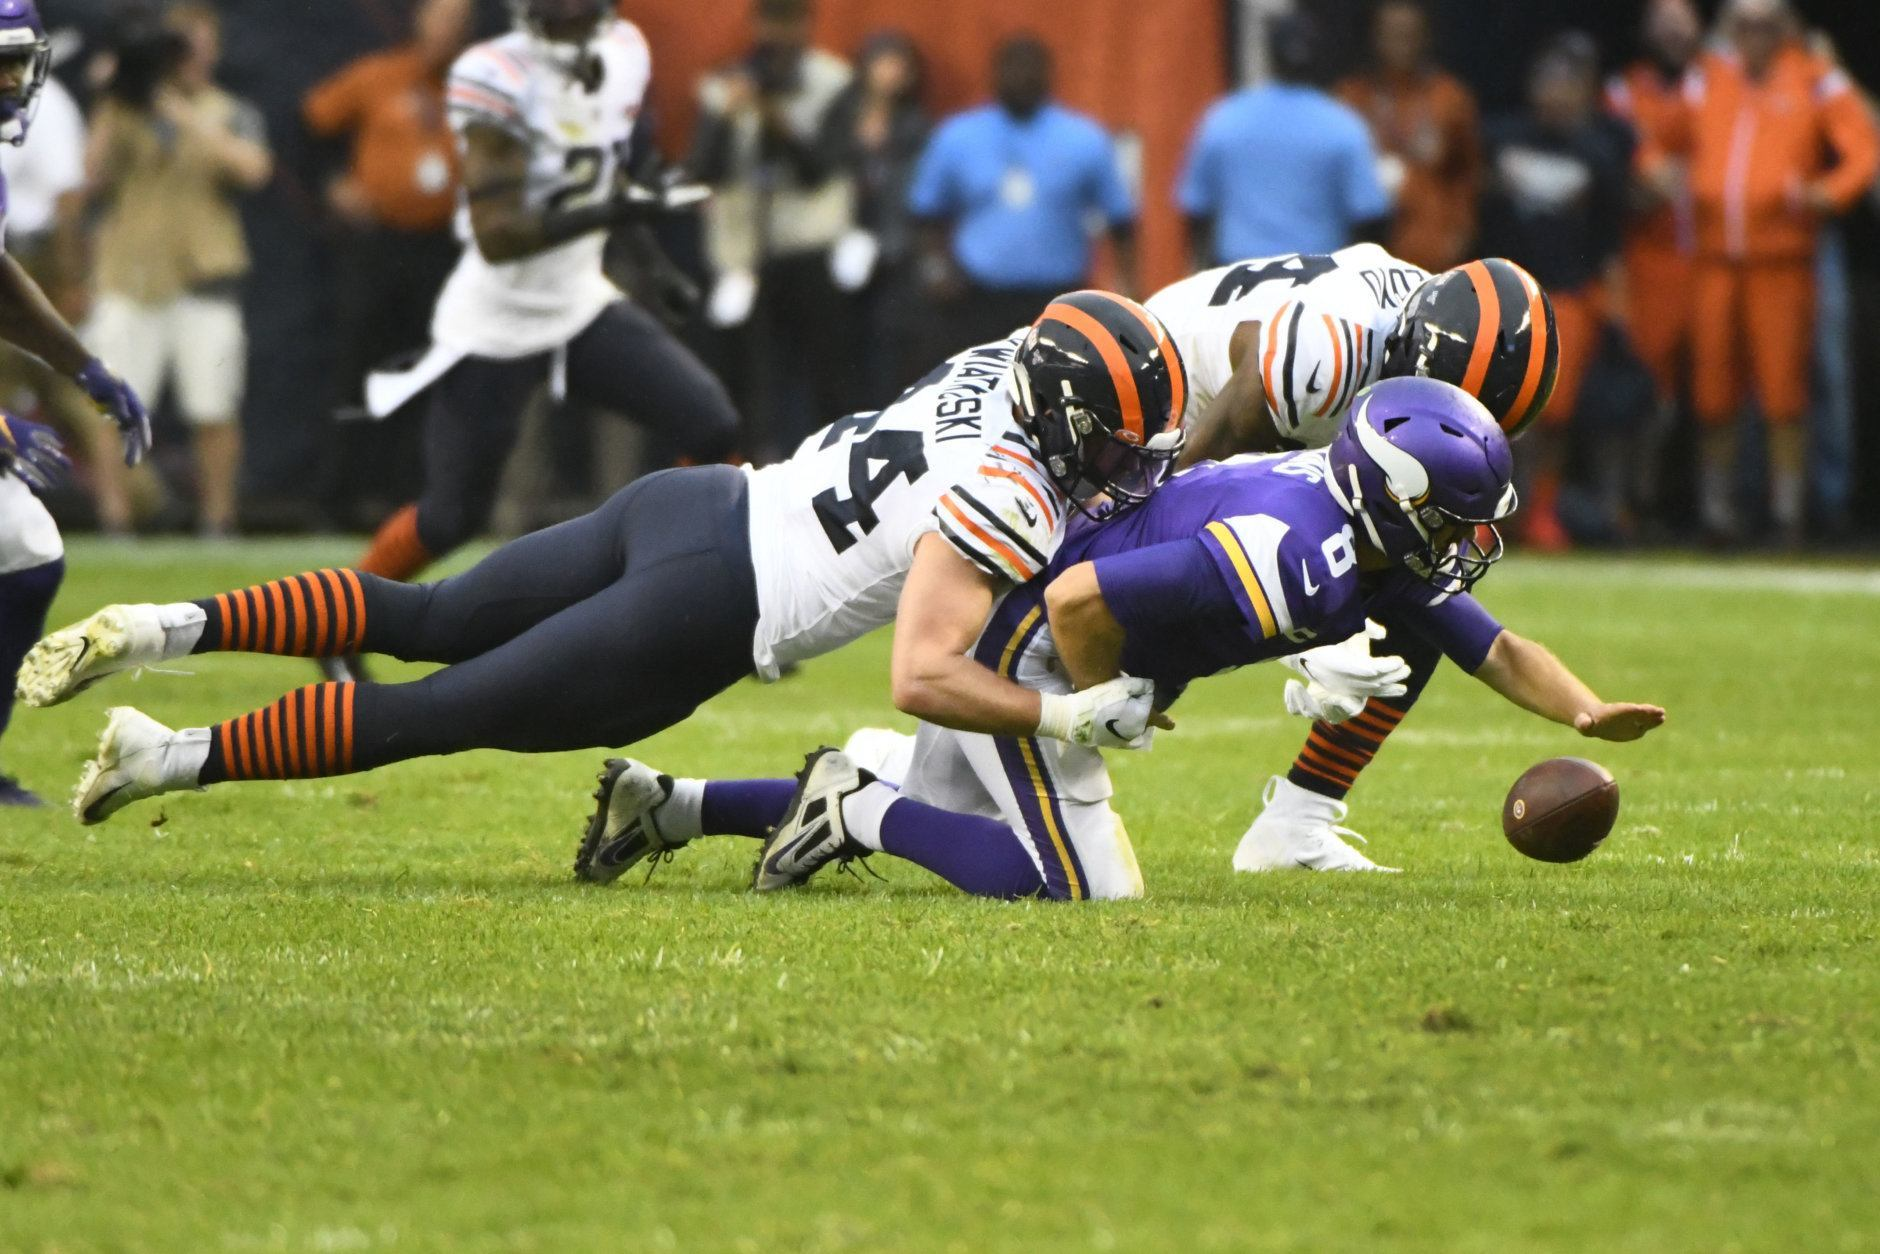 """<p><b><i>Vikings 6</i></b><br /> <b><i>Bears 16</i></b></p> <p>A week after an &#8220;<a href=""""https://chicago.suntimes.com/bears/2019/9/25/20883774/bears-matt-nagy-tarik-cohen-live-stream-nude-teammate"""">Em-bare-ass-ing</a>&#8221; blowout of the Redskins, the Bears mauled ex-Redskin Kirk Cousins for as many sacks (6) as points allowed. If Chicago ever gets anything from their QB — and Chase Daniel actually played better than the injured Mitch Trubisky has at any point this season — this is a threat to win a wide open NFC.</p>"""